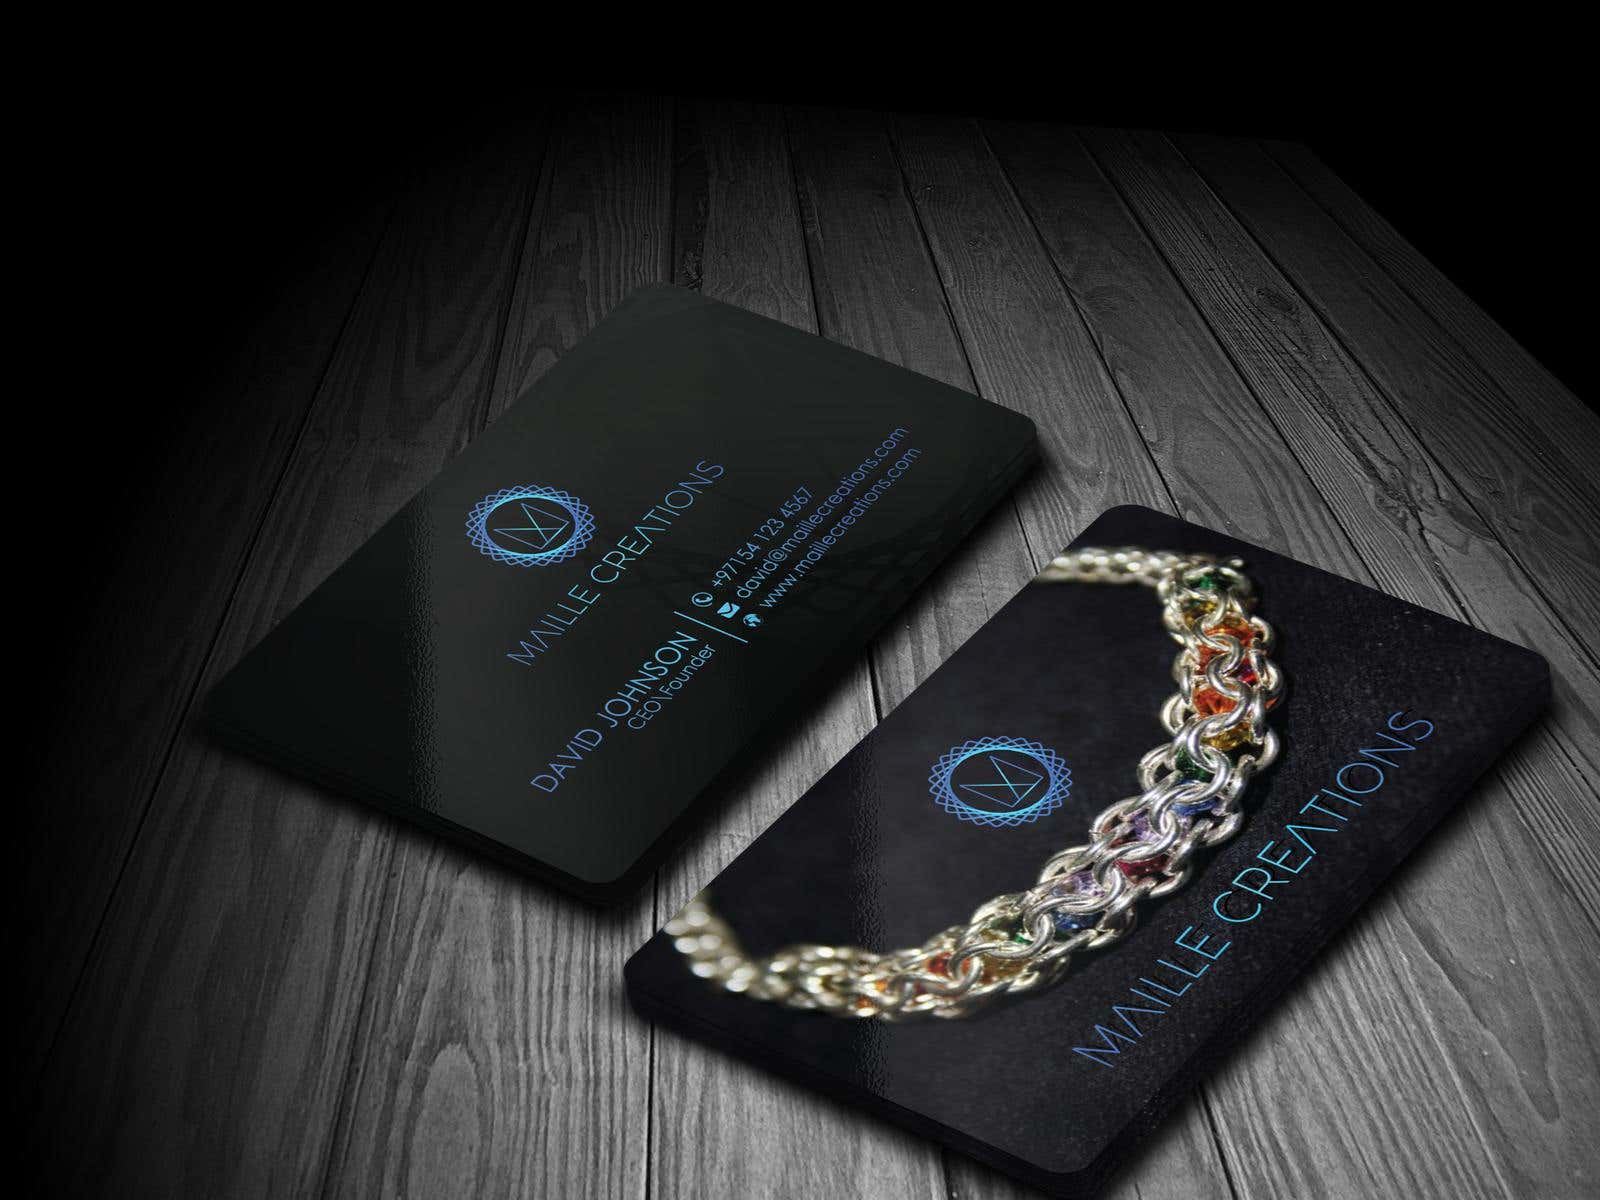 Design A Business Card For A Hobby Jewelry Business ...